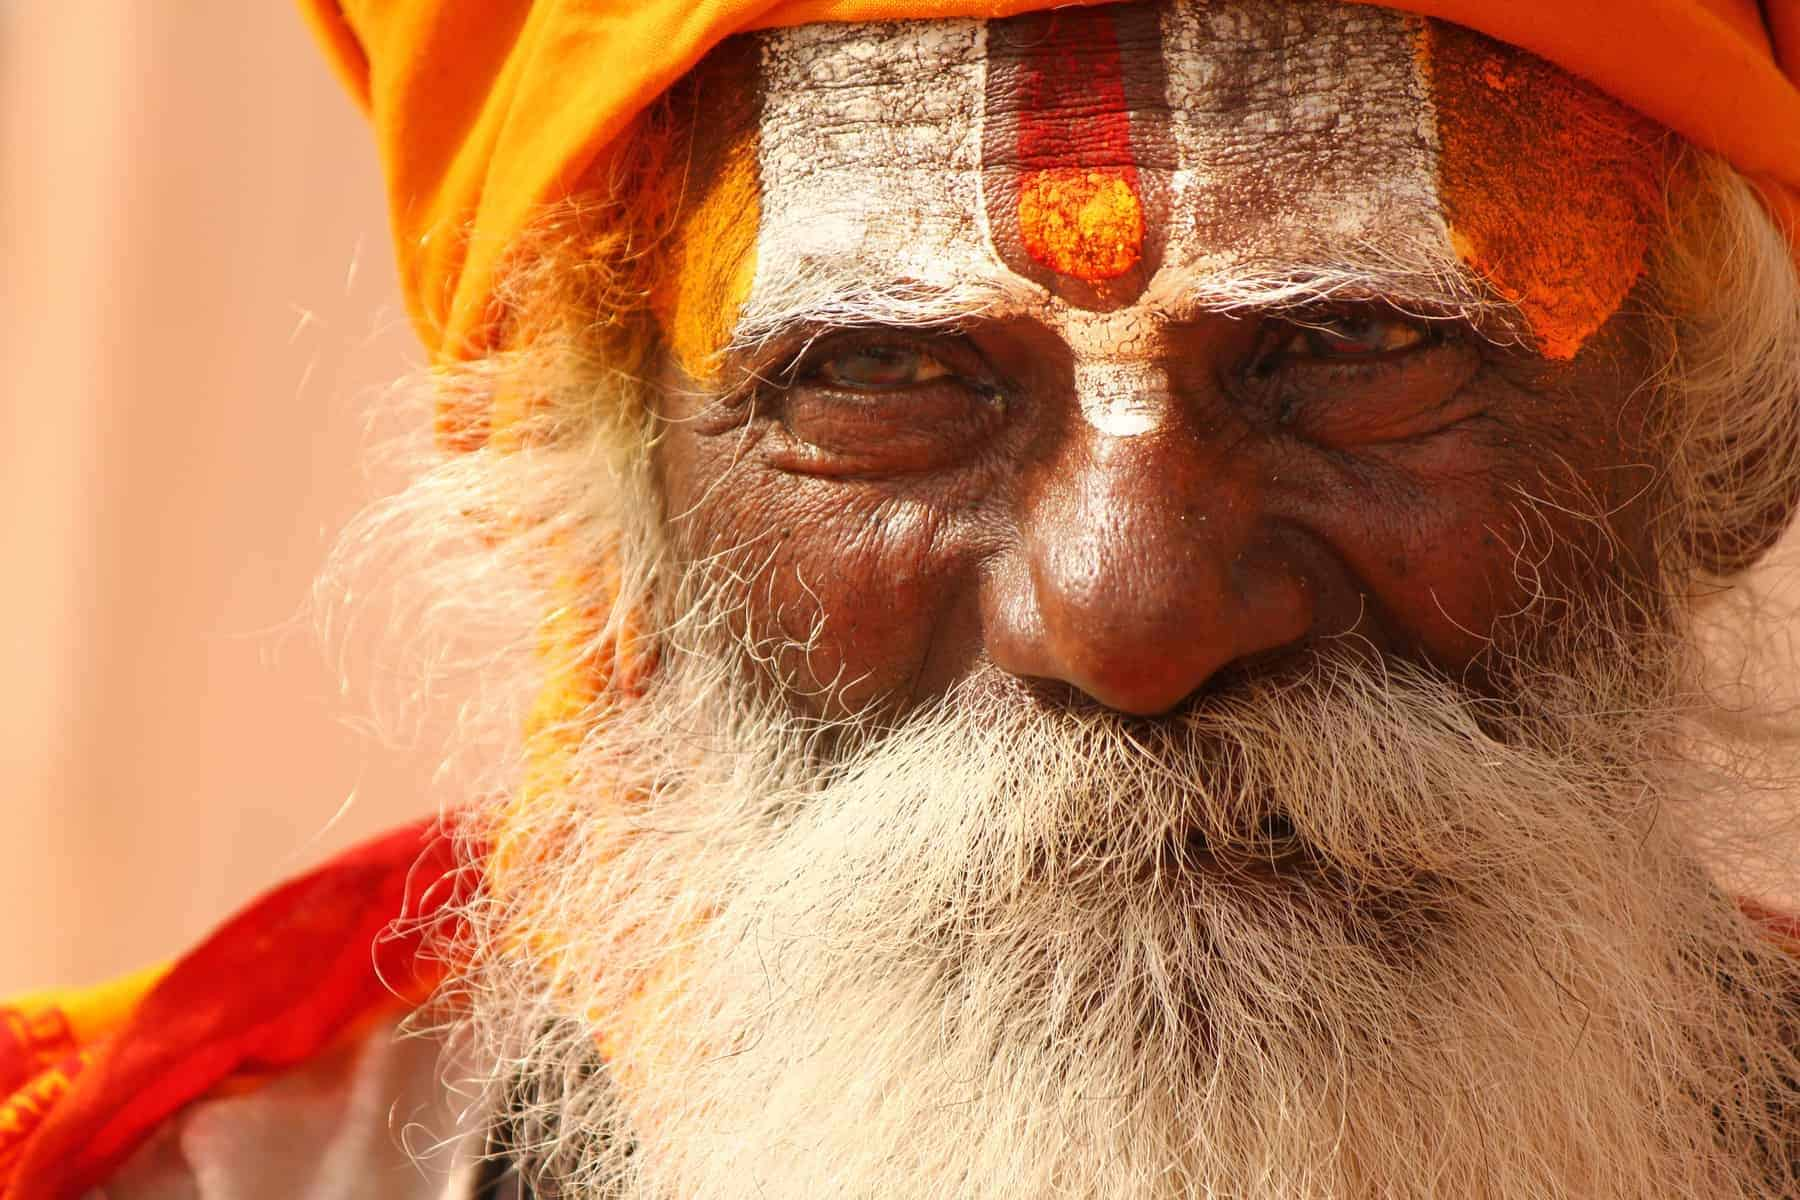 A Hindu monk, painted his forehead with holy colors on the bank of river Ganga, at Varanasi, India. It is said that Varanasi is the oldest living city on earth. they are known as sadhus. Sadhus engage in a wide variety of religious practices. Some practice extreme asceticism while others mainly focus on praying, chanting or meditating.